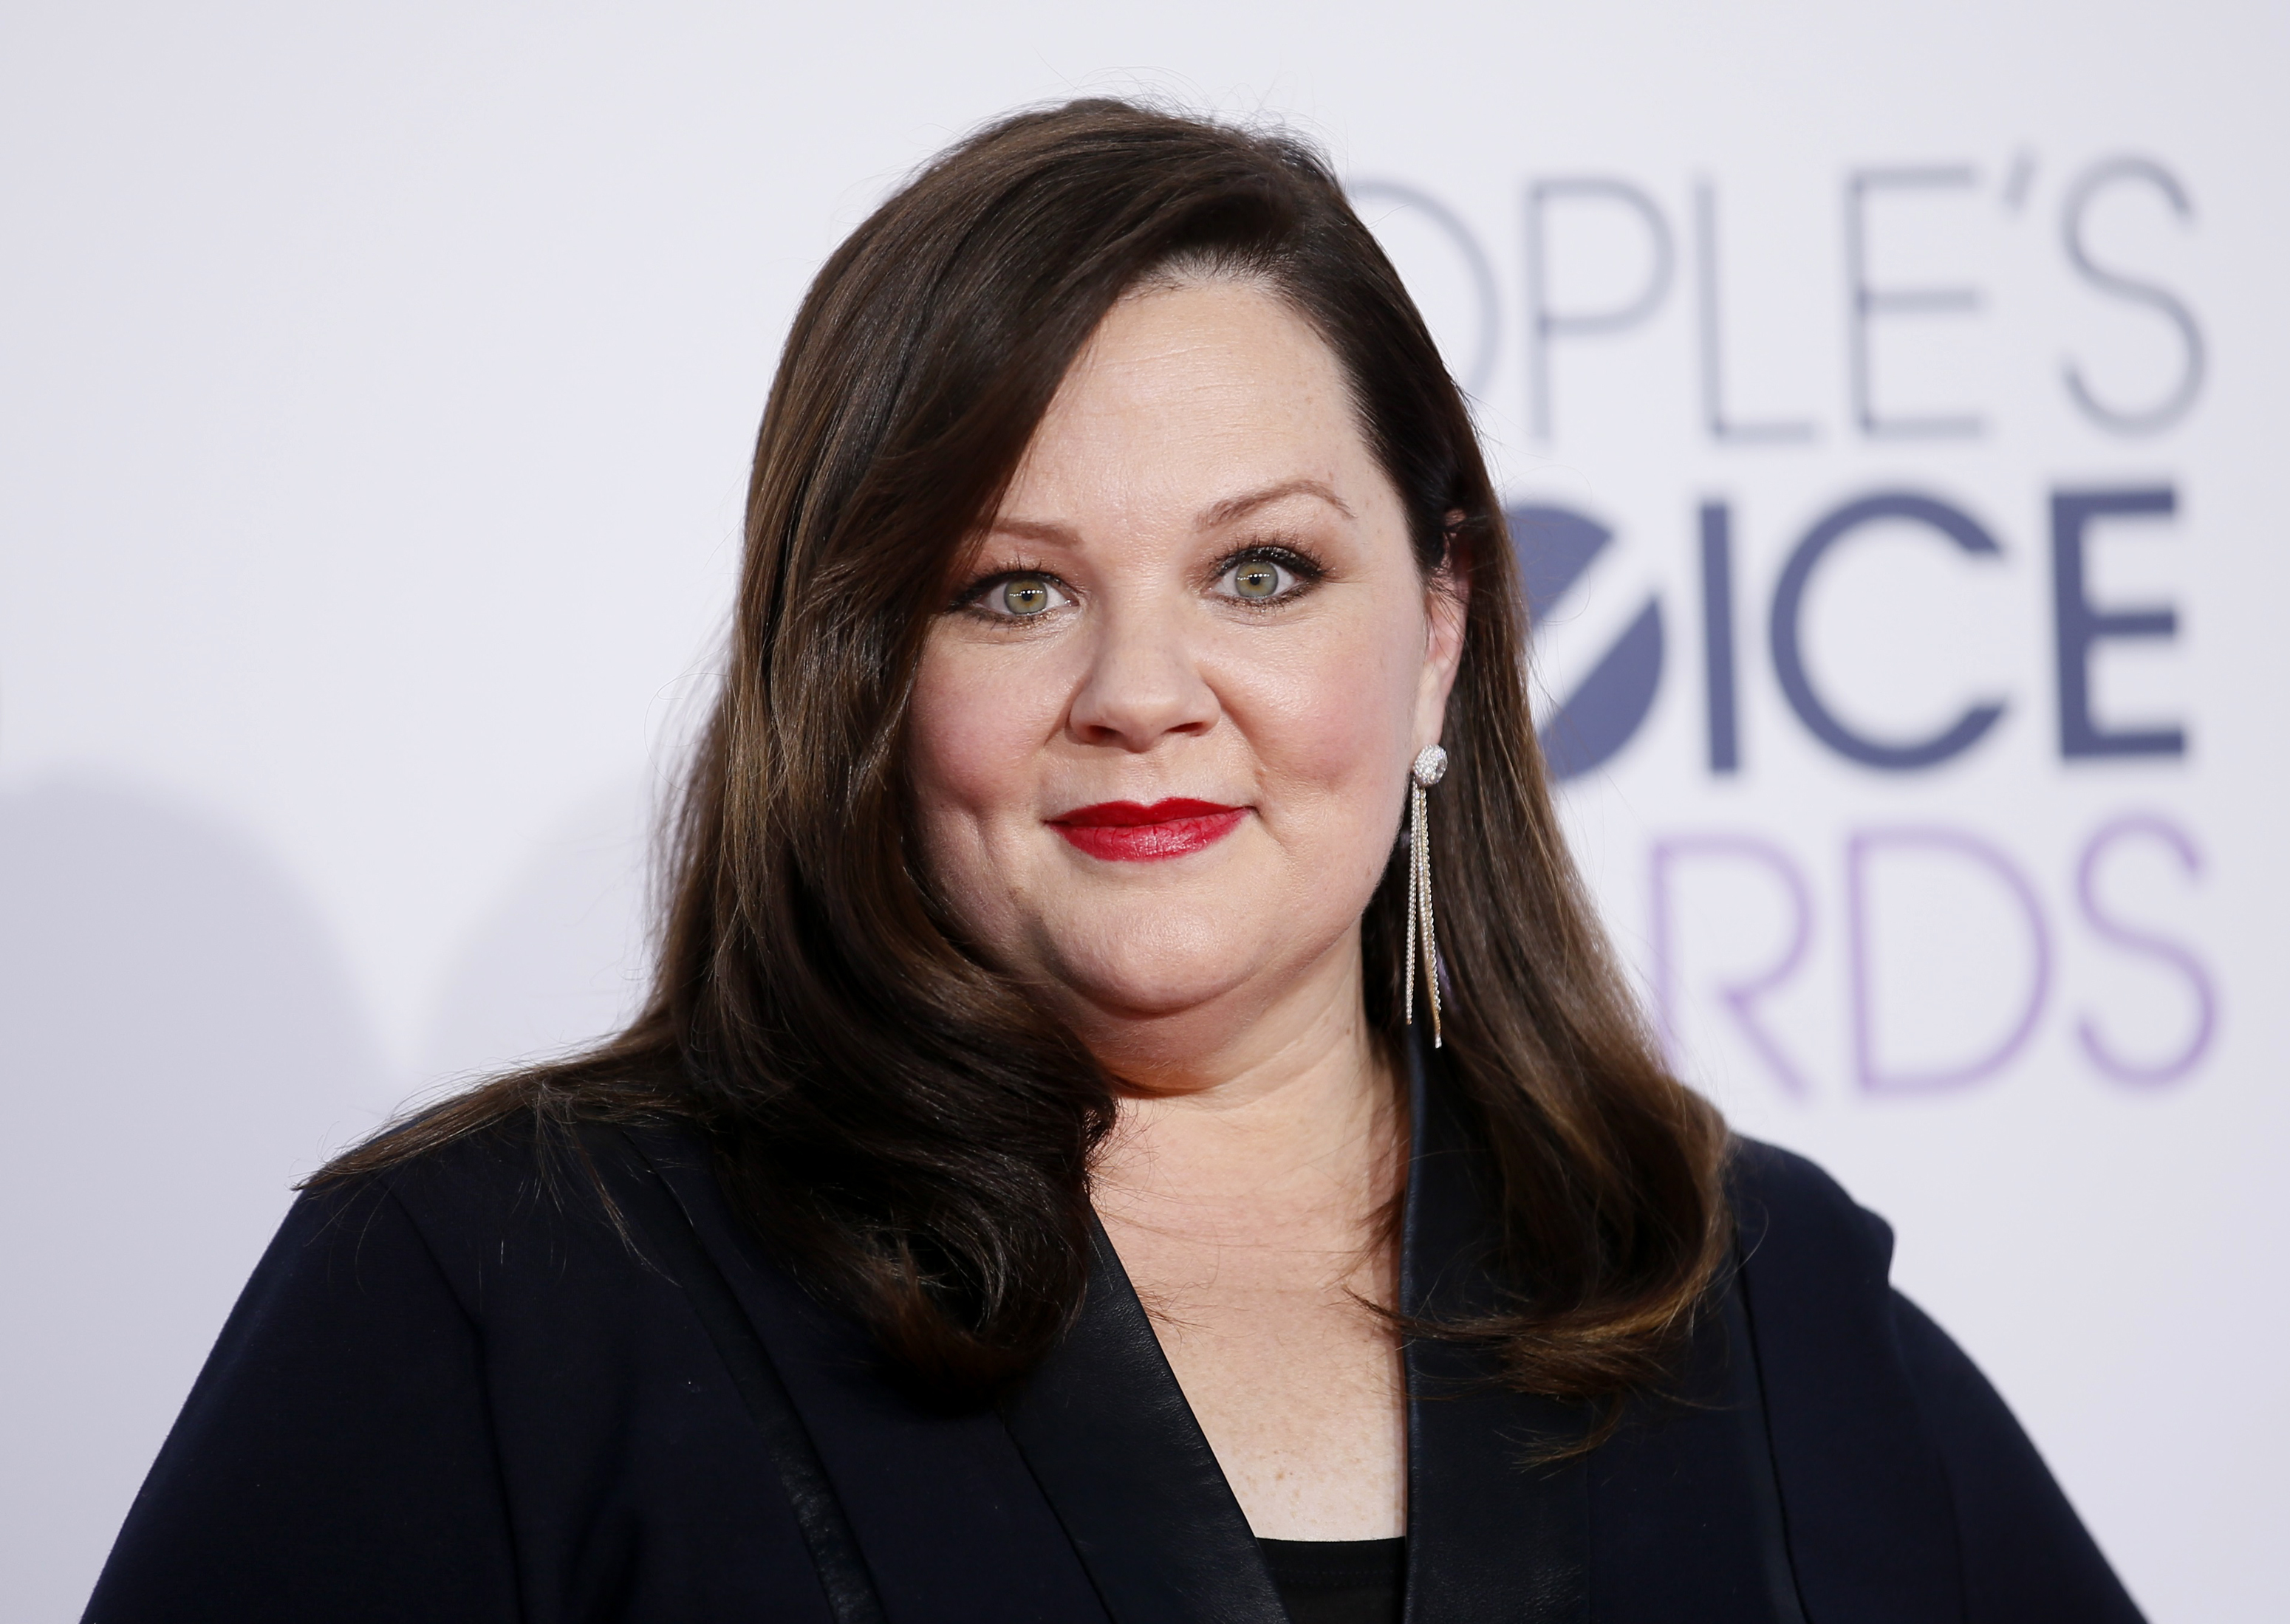 melissa mccarthy wallpaper background 60640